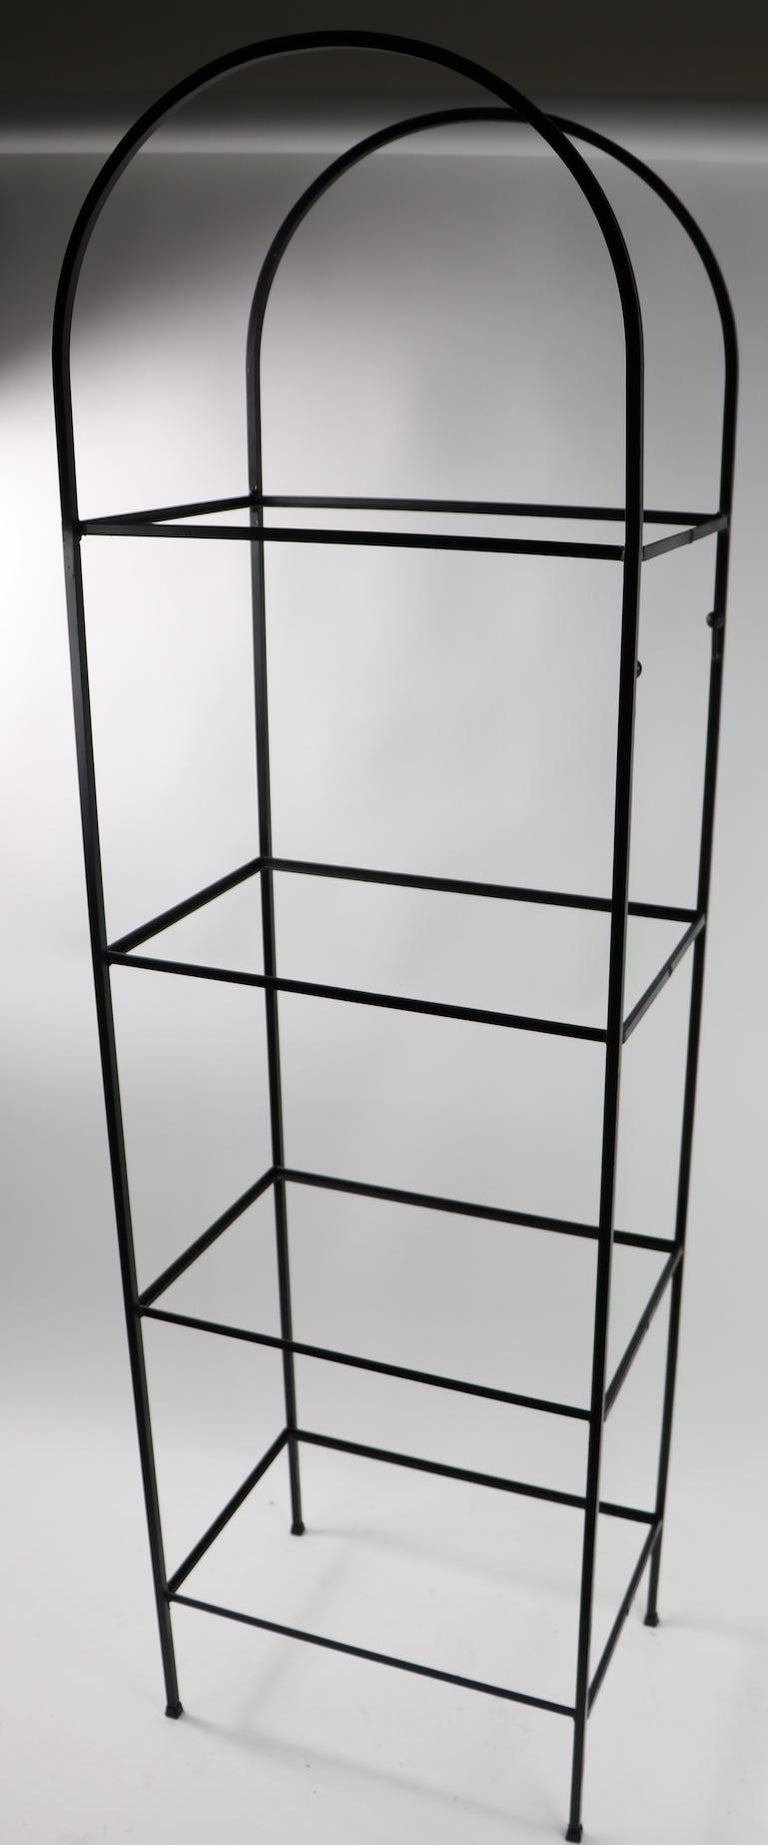 Arch top wrought iron shelf with plate glass shelves, attributed to Arthur Umanoff. Freestanding unit with four shelves, each 17 in apart. Great for display, storage etc. clean, ready to use.